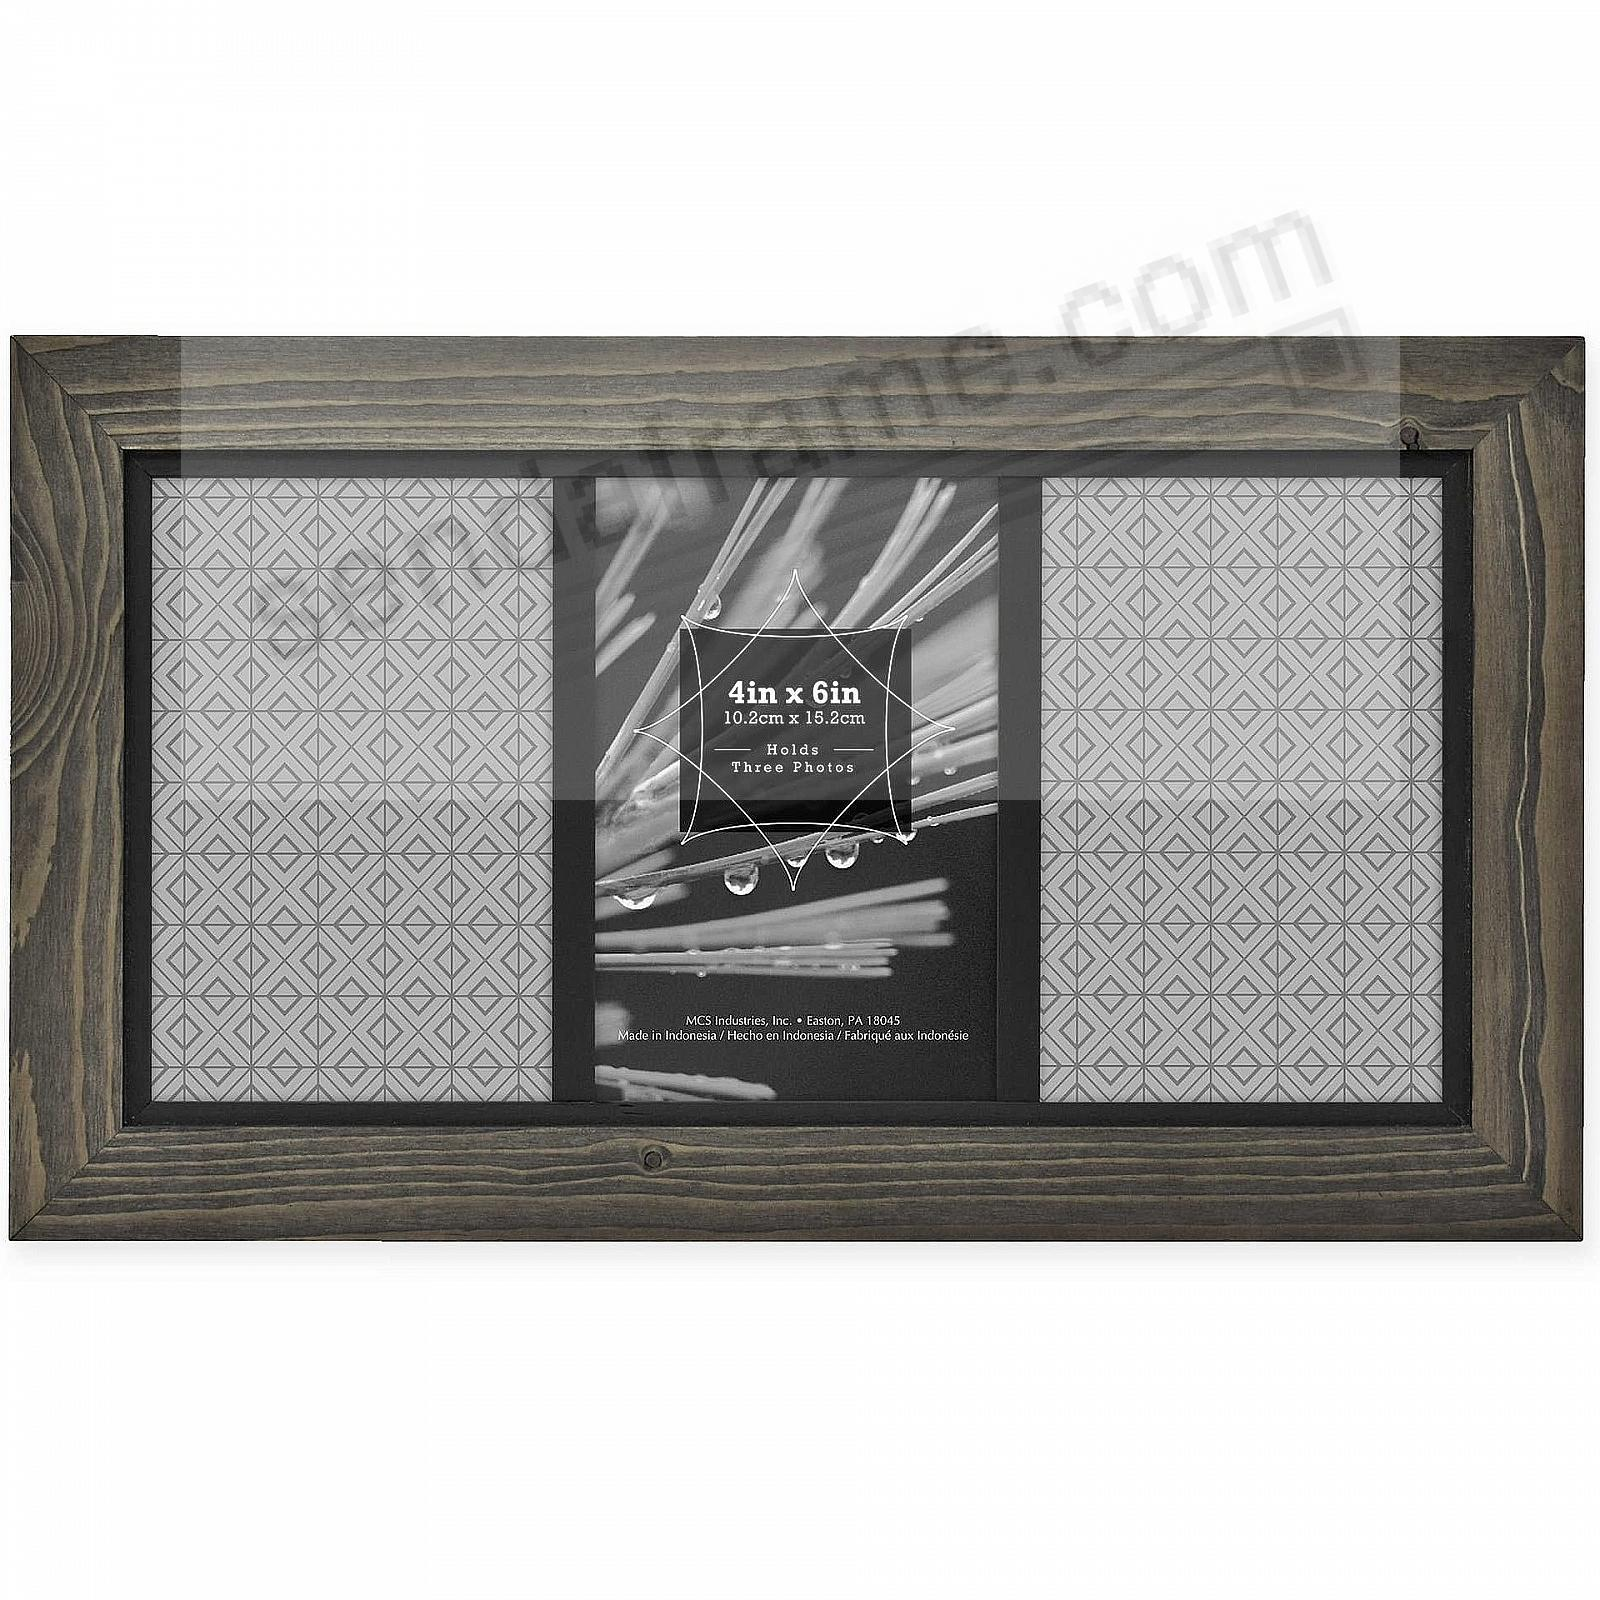 TIMBER Distressed Gray/Black Wood 3-4x6/6x12 Frame by MCS®